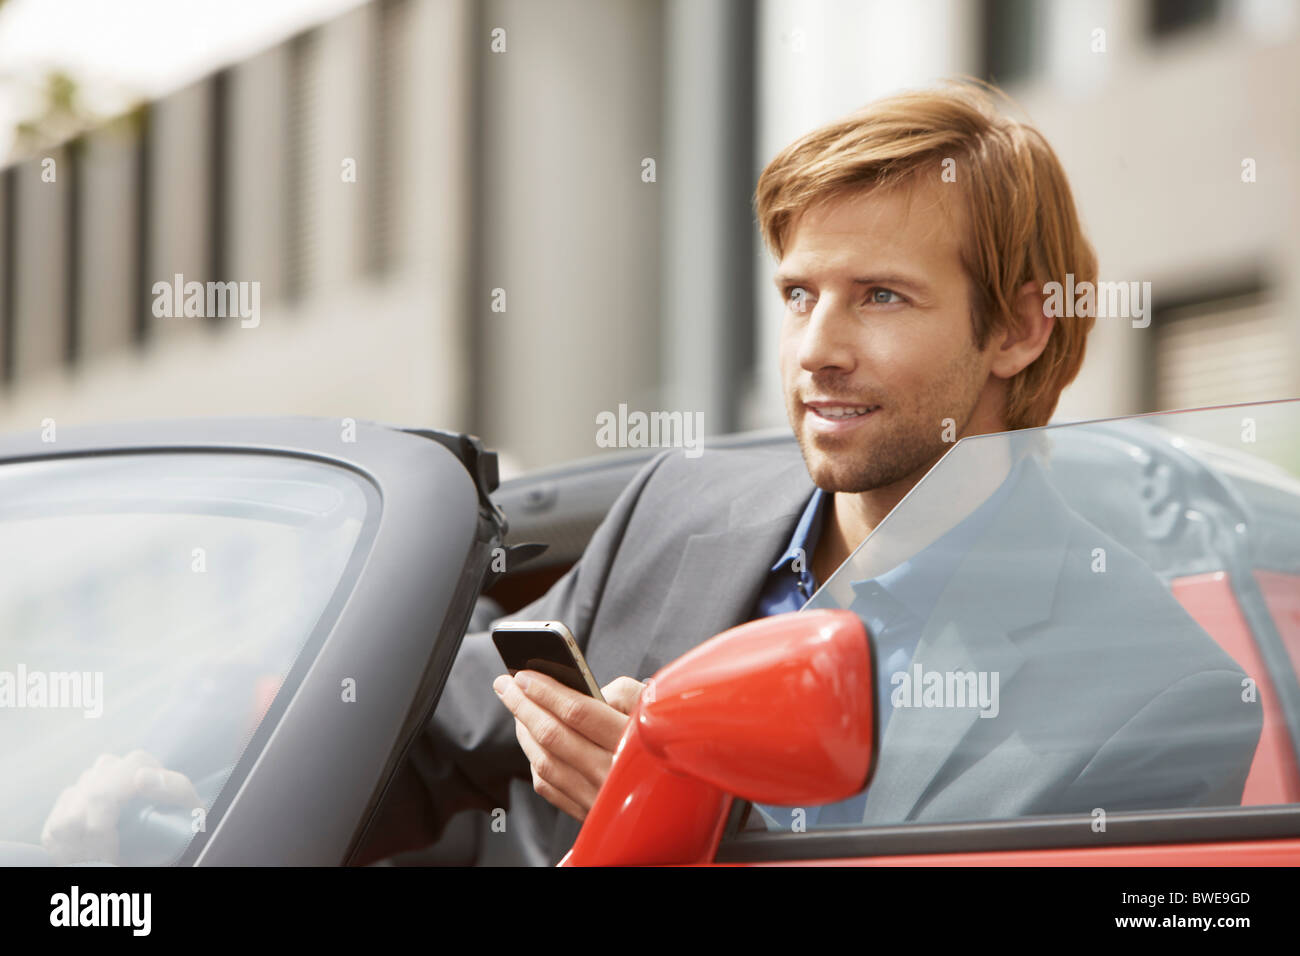 Business man on phone in an electric car Stock Photo